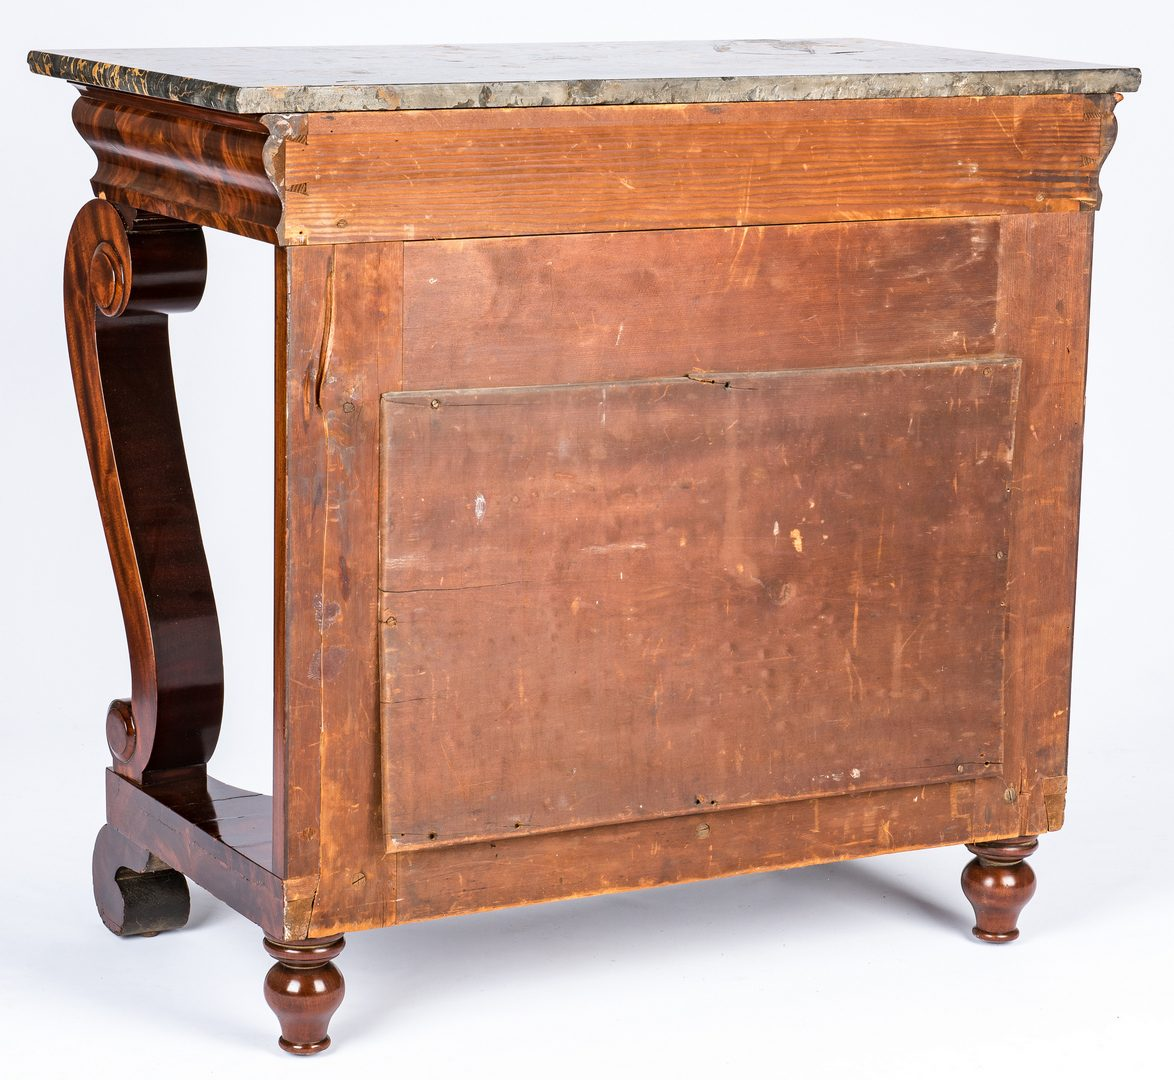 Lot 131: Signed Baltimore Marble Topped Pier Table